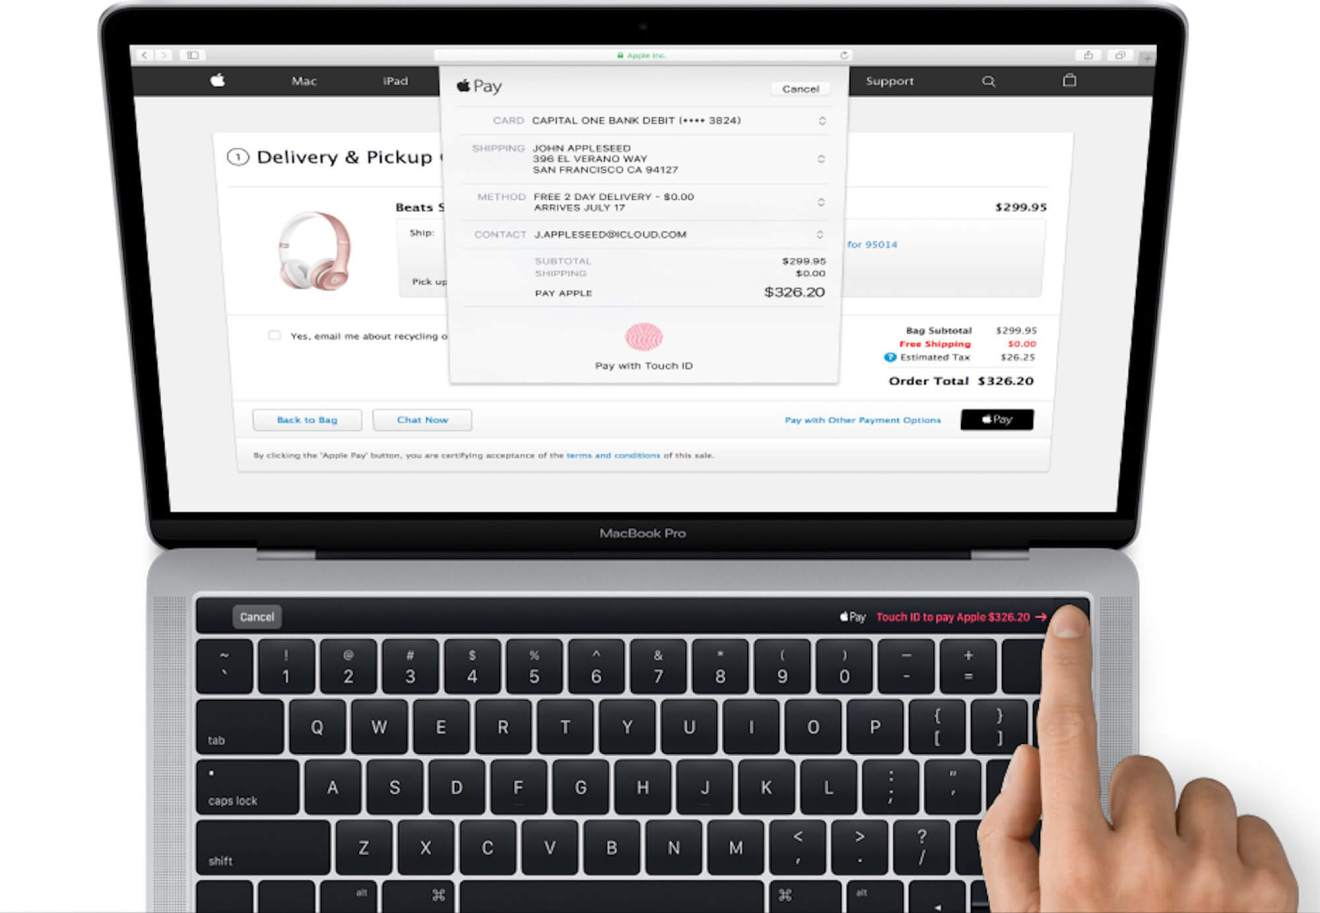 macbook pro magic toolbar - De novo, Apple? Veja a imagem que vazou do novo MacBook Pro